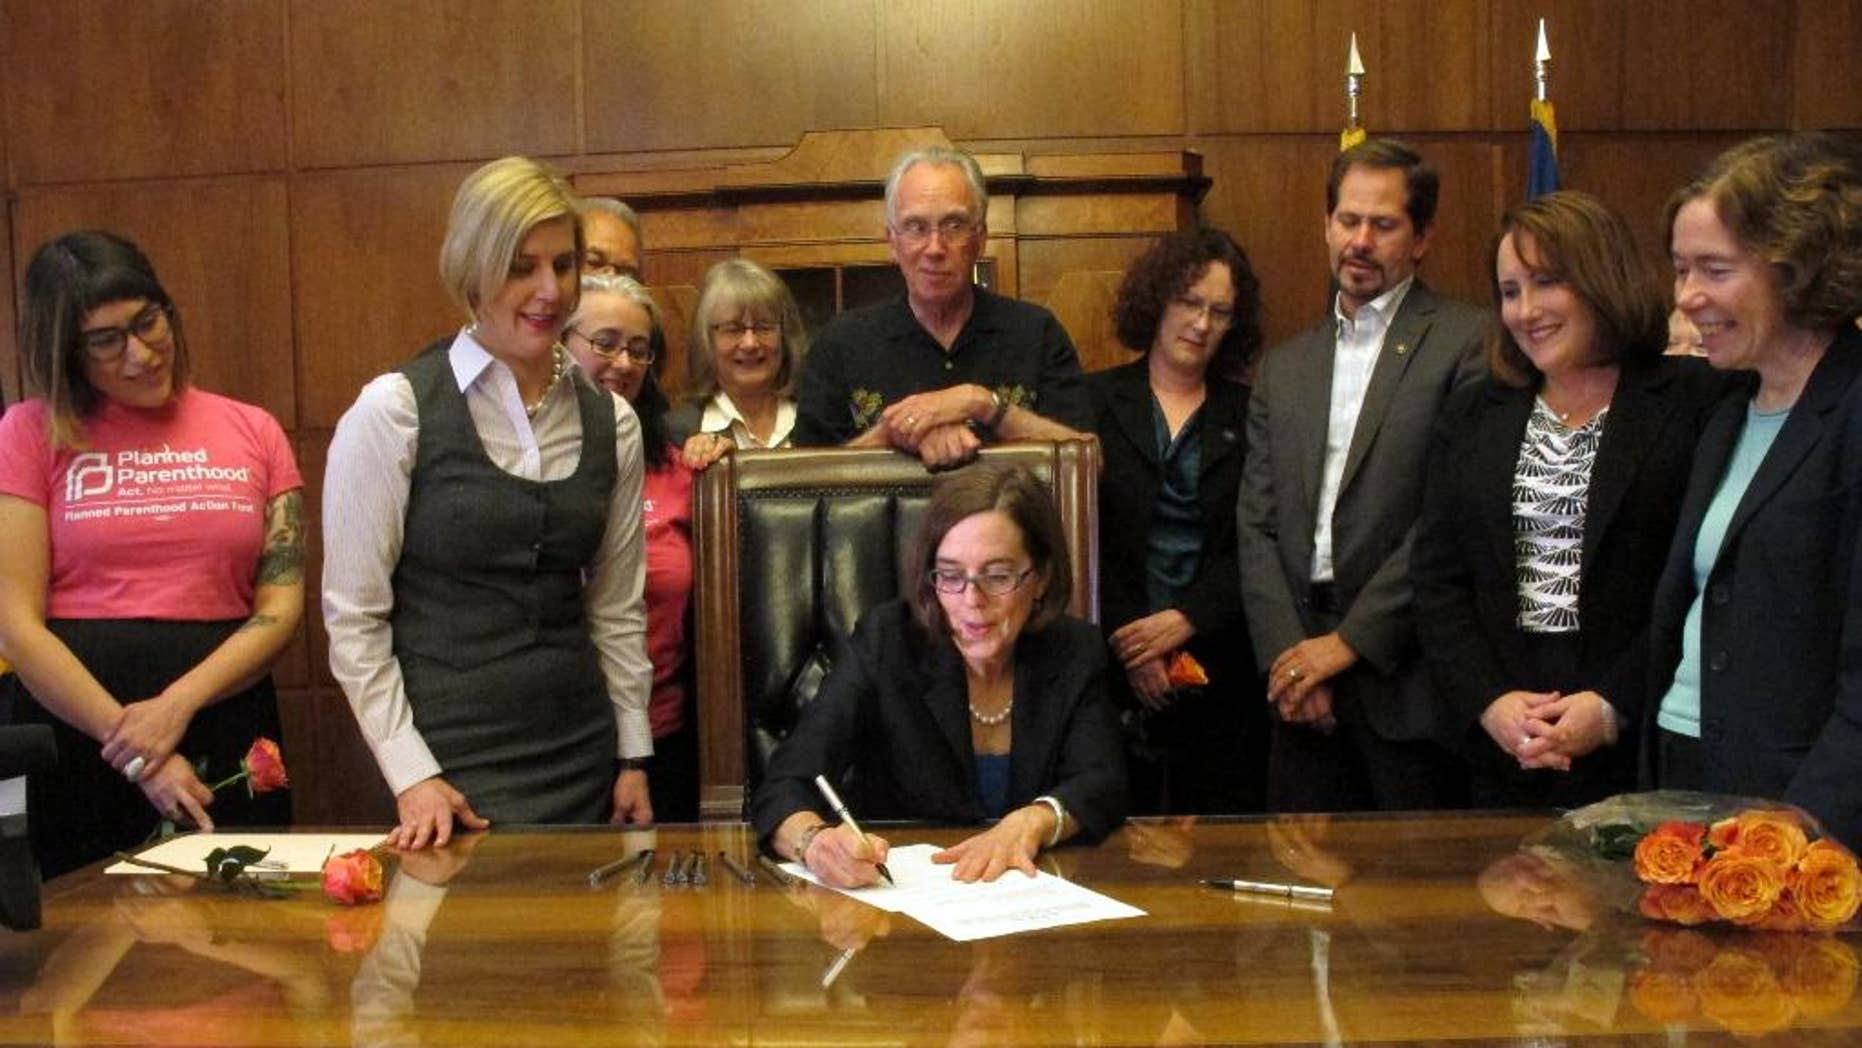 Gov. Kate Brown signs a bill expanding access to contraception during a ceremony at the state Capitol in Salem, Ore., on Thursday, June 11, 2015. The bill makes Oregon the first state to require insurers to pay for up to 12 months of birth control at a time. (AP Photo/Jonathan J. Cooper)